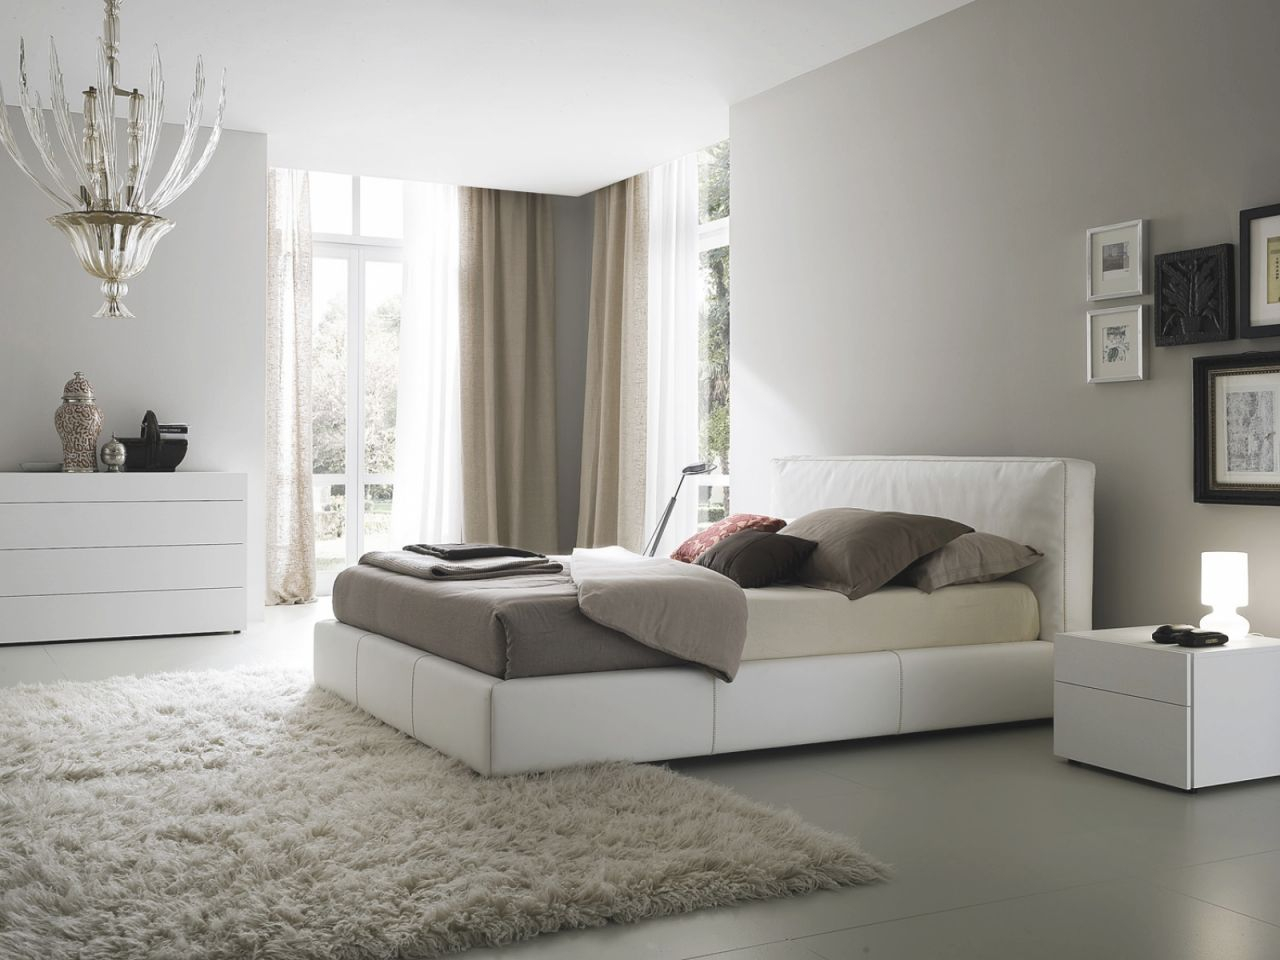 Bedroom Decorating Ideas Walls With Taupe Beige Gray Decor for Beautiful Taupe Bedroom Decorating Ideas